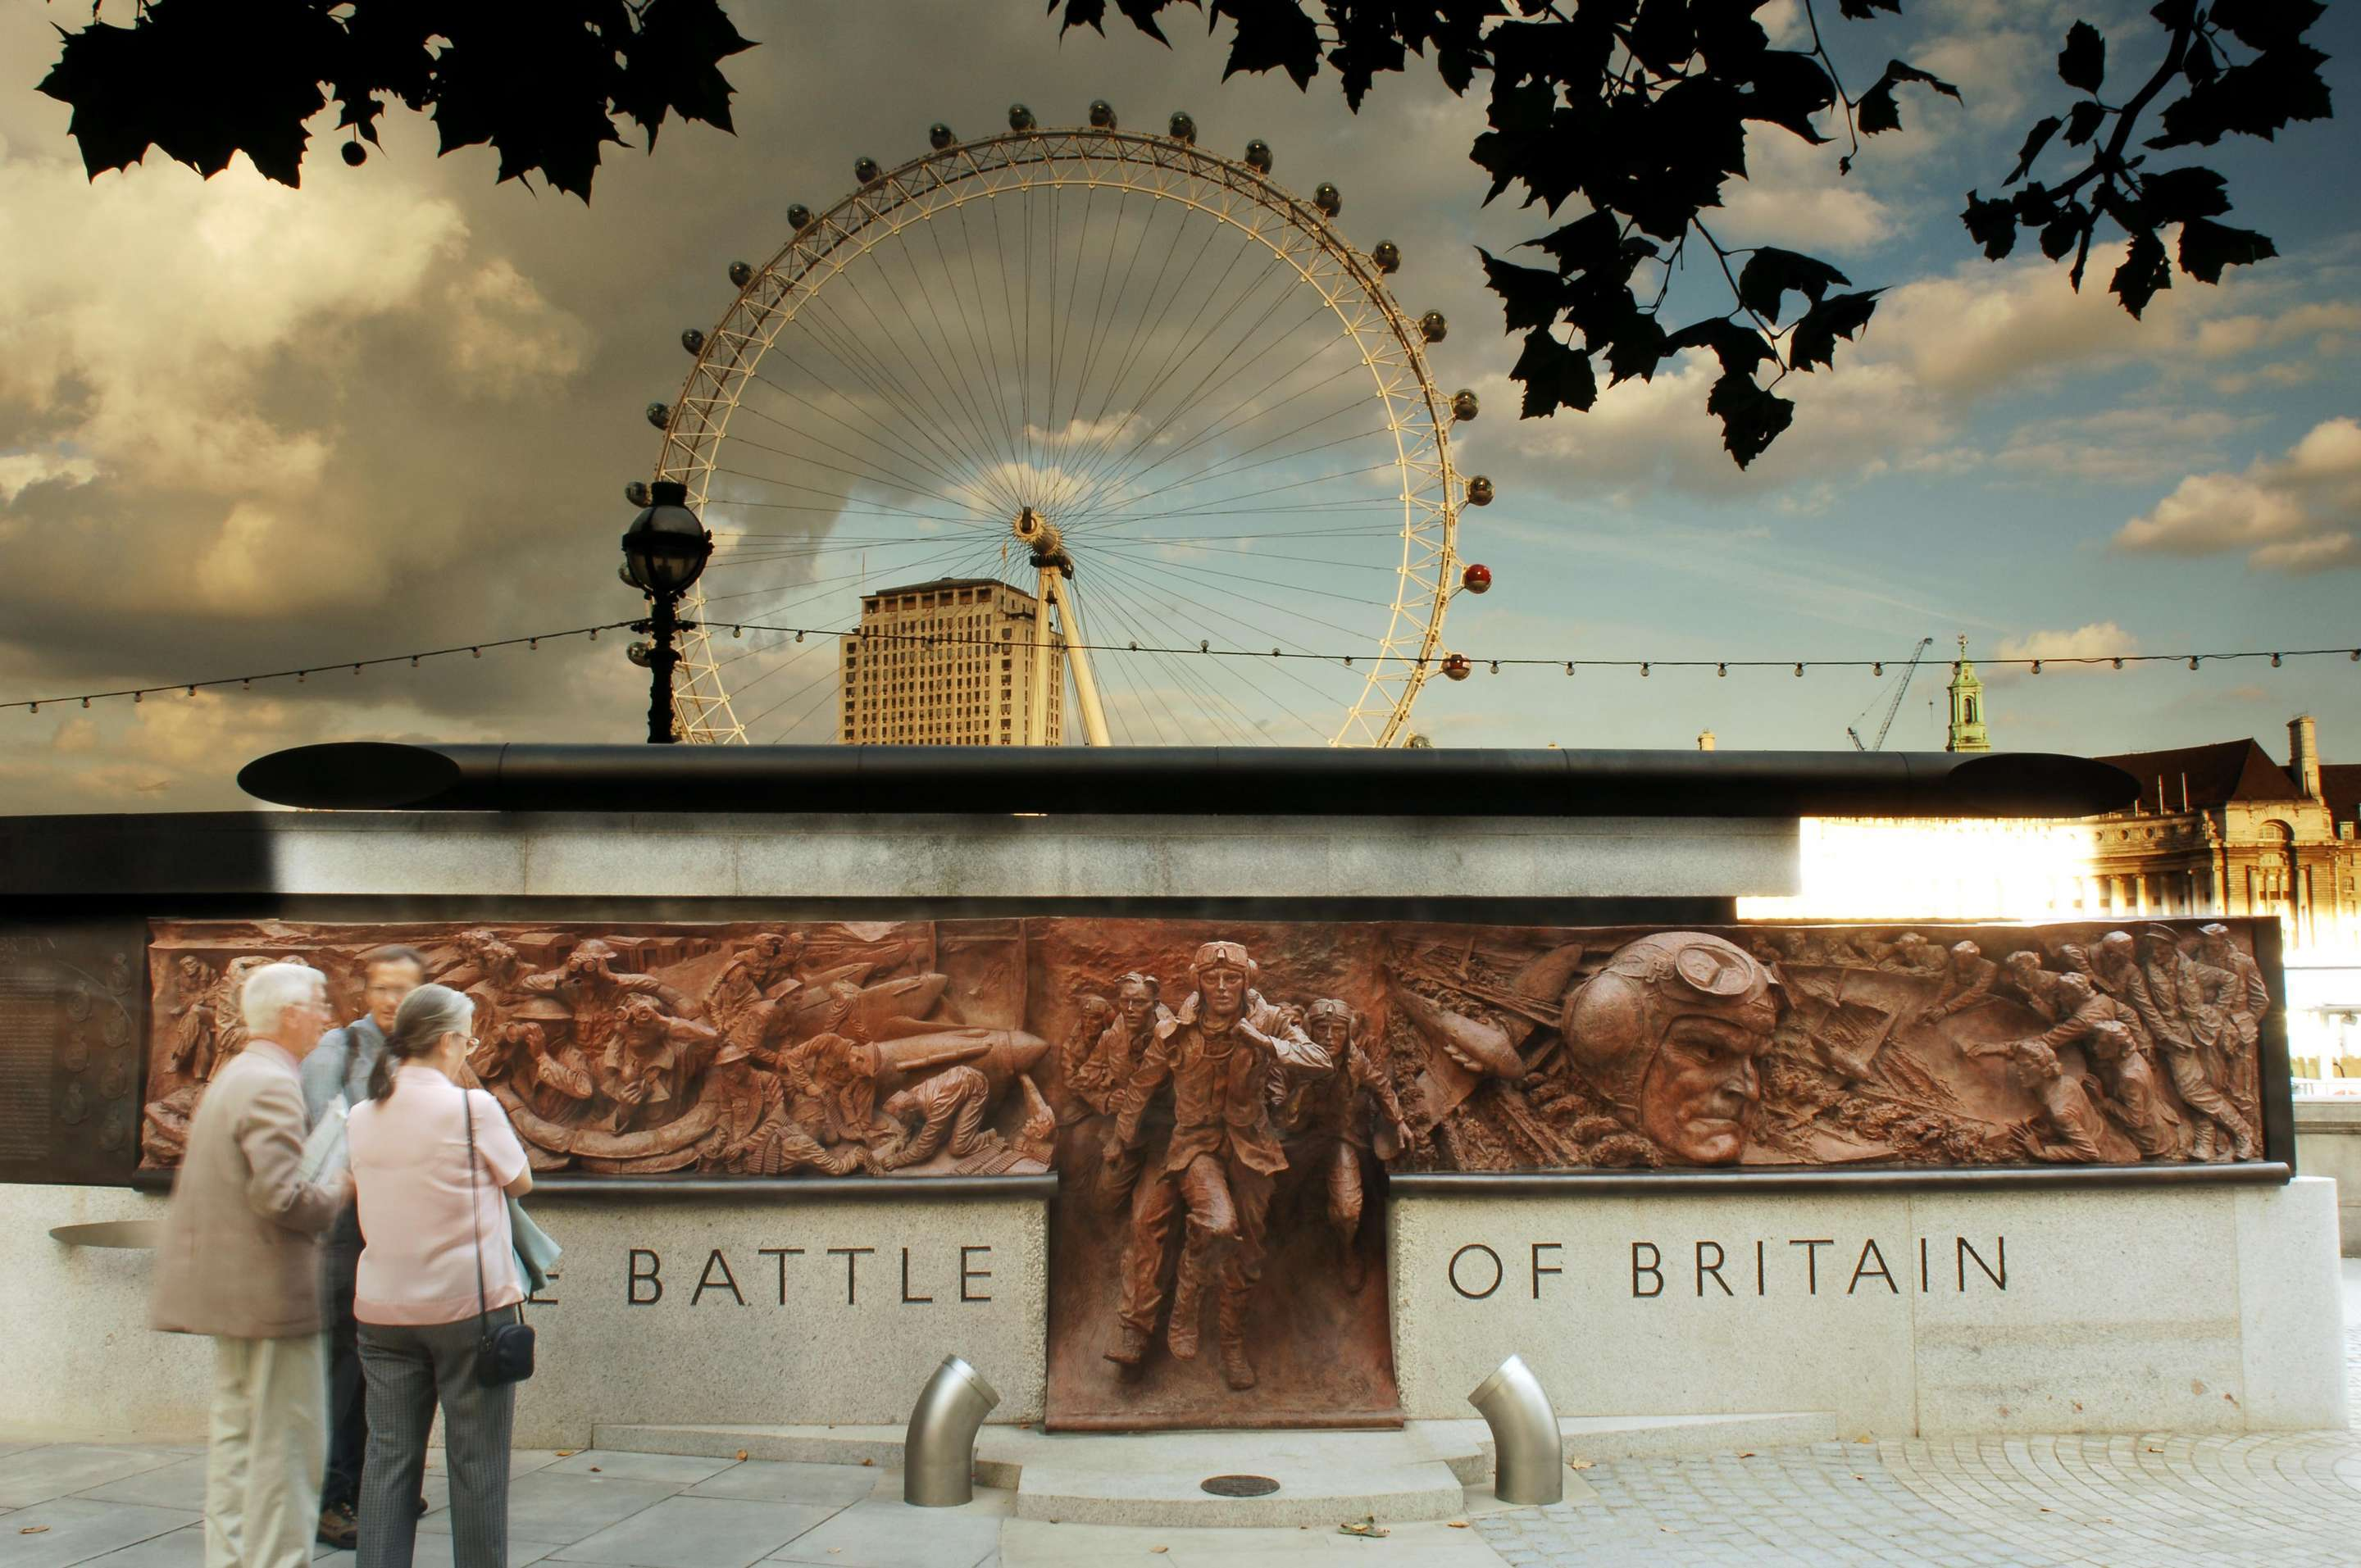 The Battle of Britain Monument